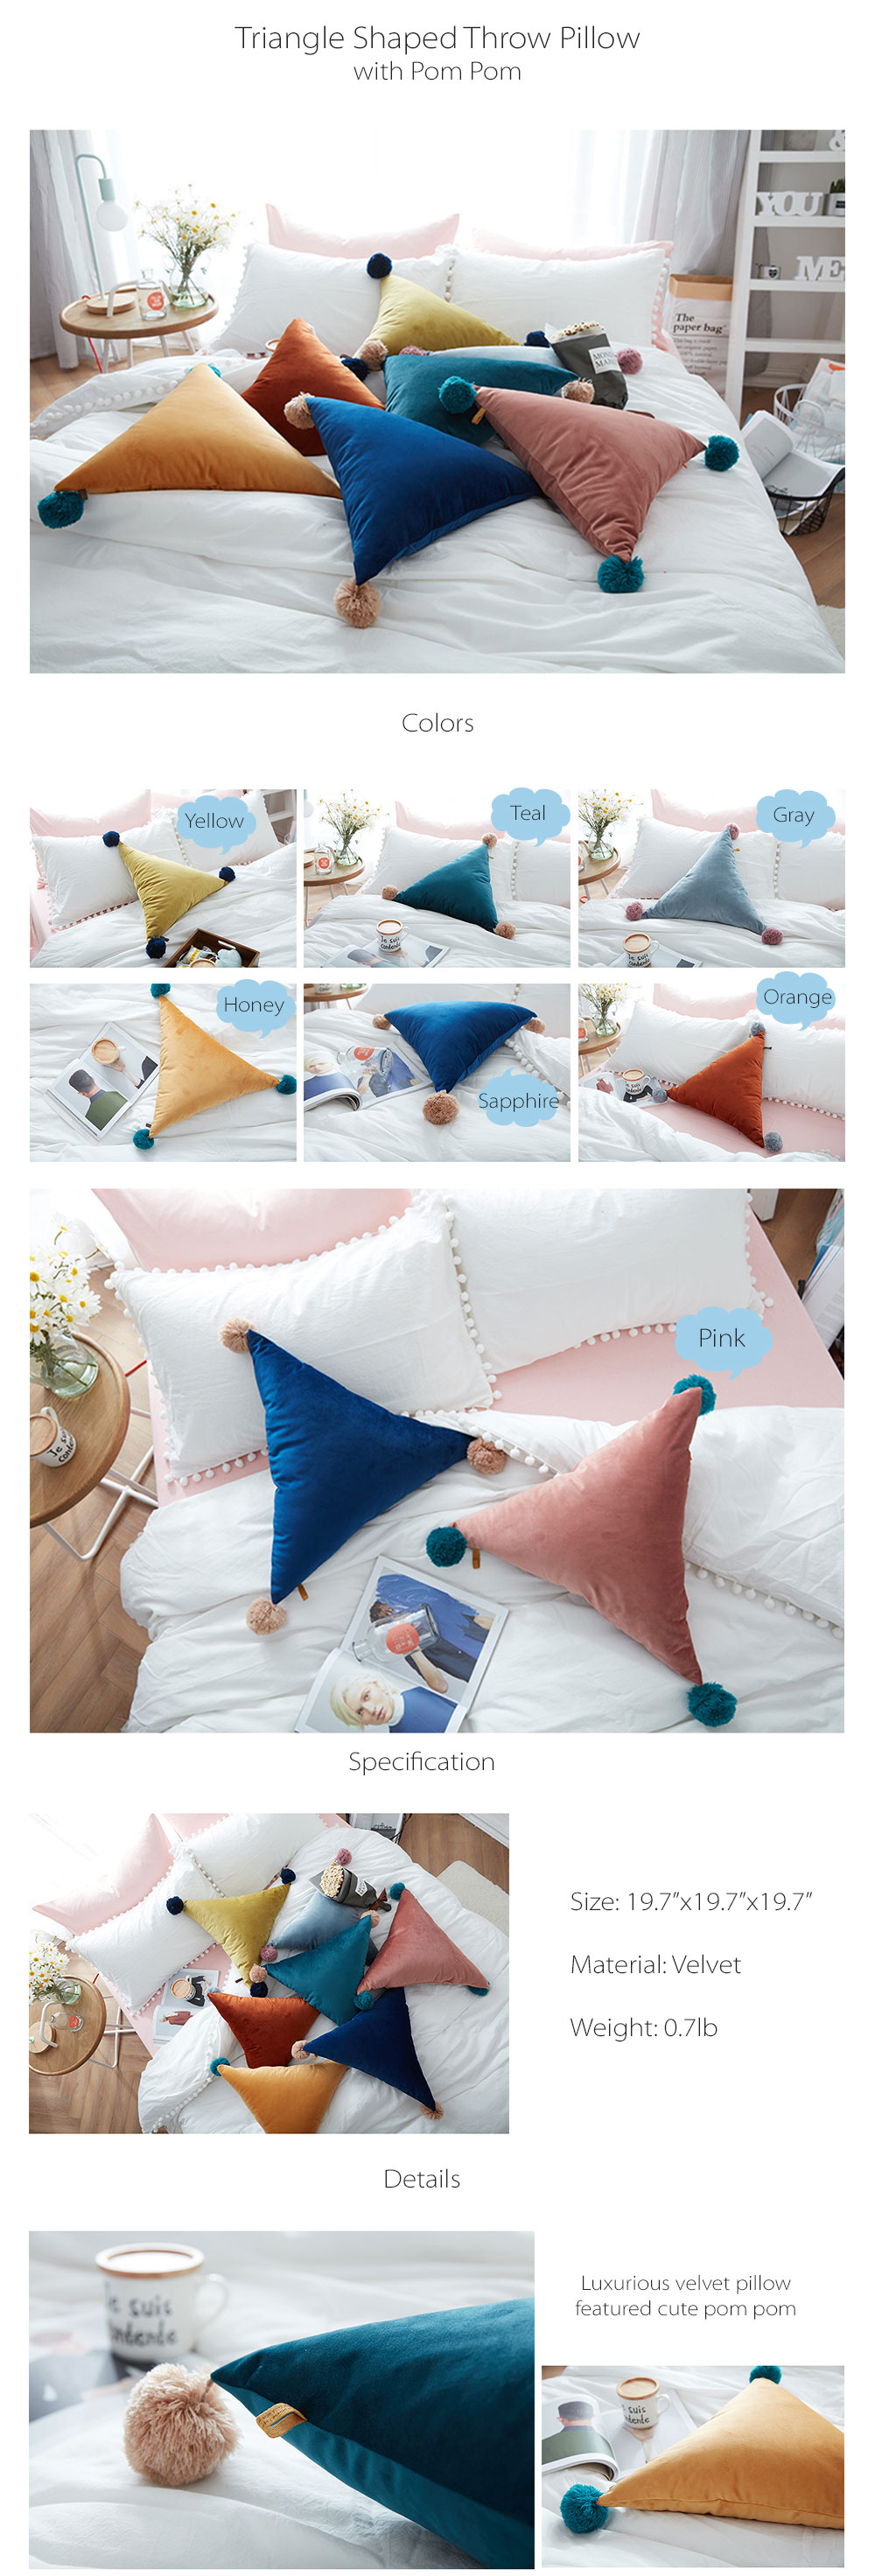 Triangle Shaped Throw Pillow Pretty and Comfortable